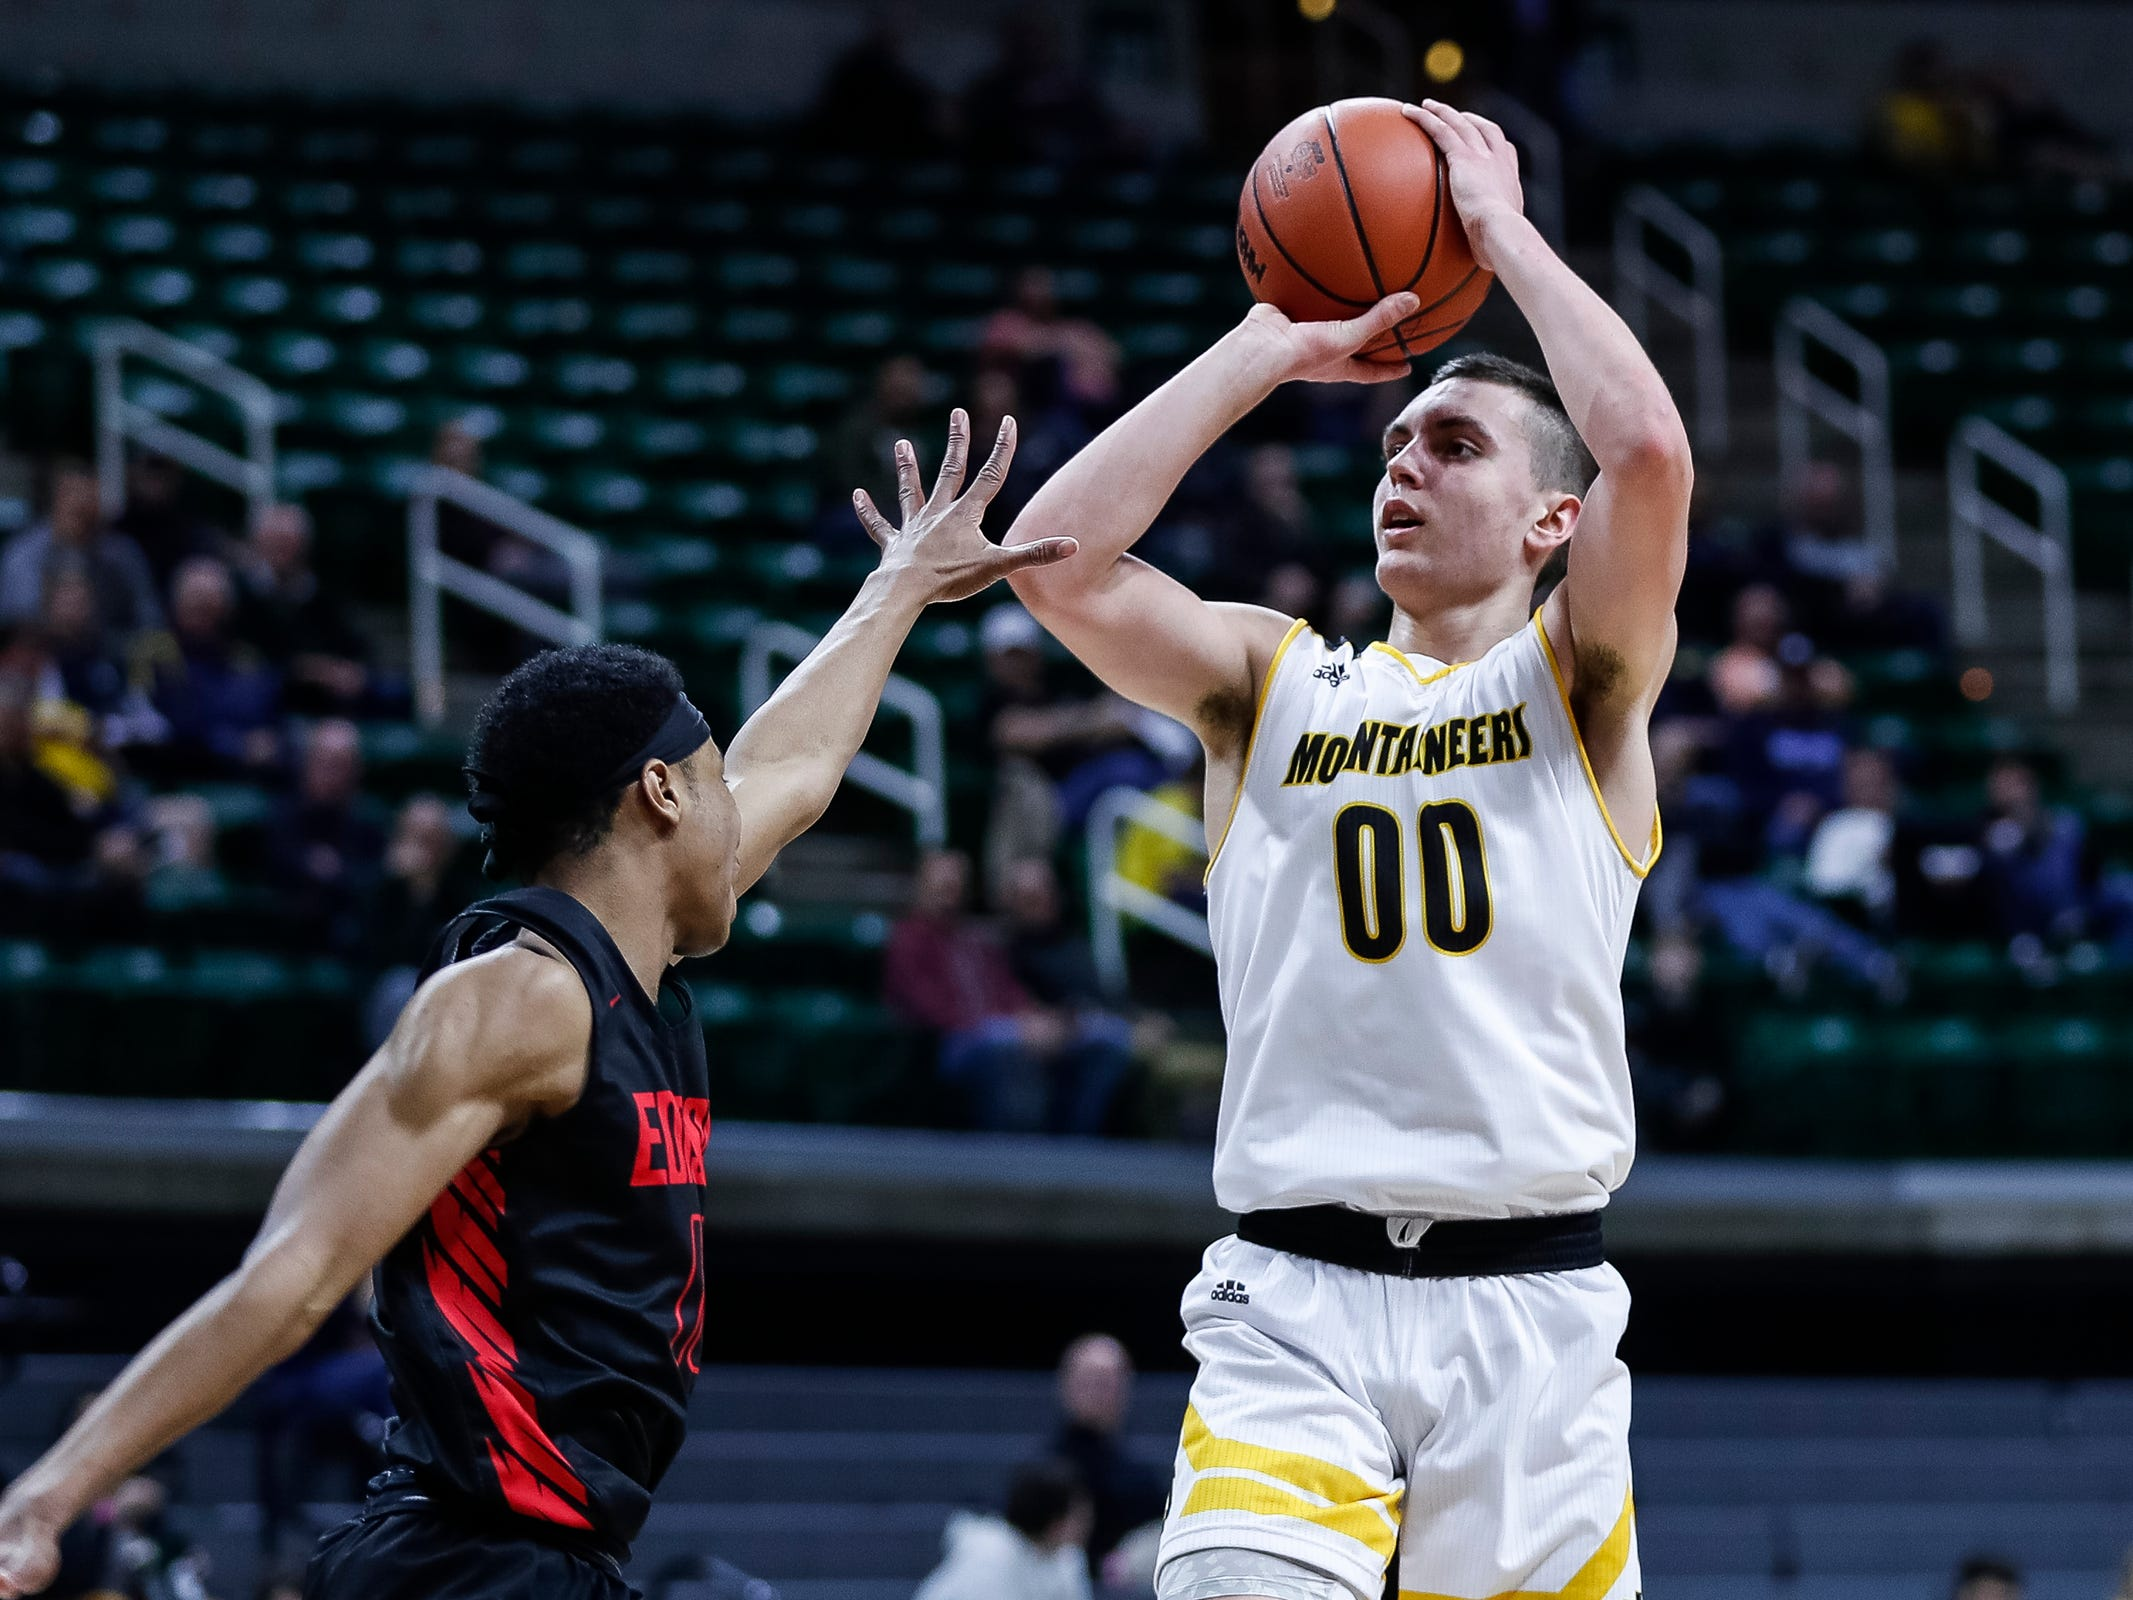 Iron Mountain's Foster Wonders shoots against Detroit Edison during the first half of MHSAA Division 3 semifinal at the Breslin Center in East Lansing, Thursday, March 14, 2019.